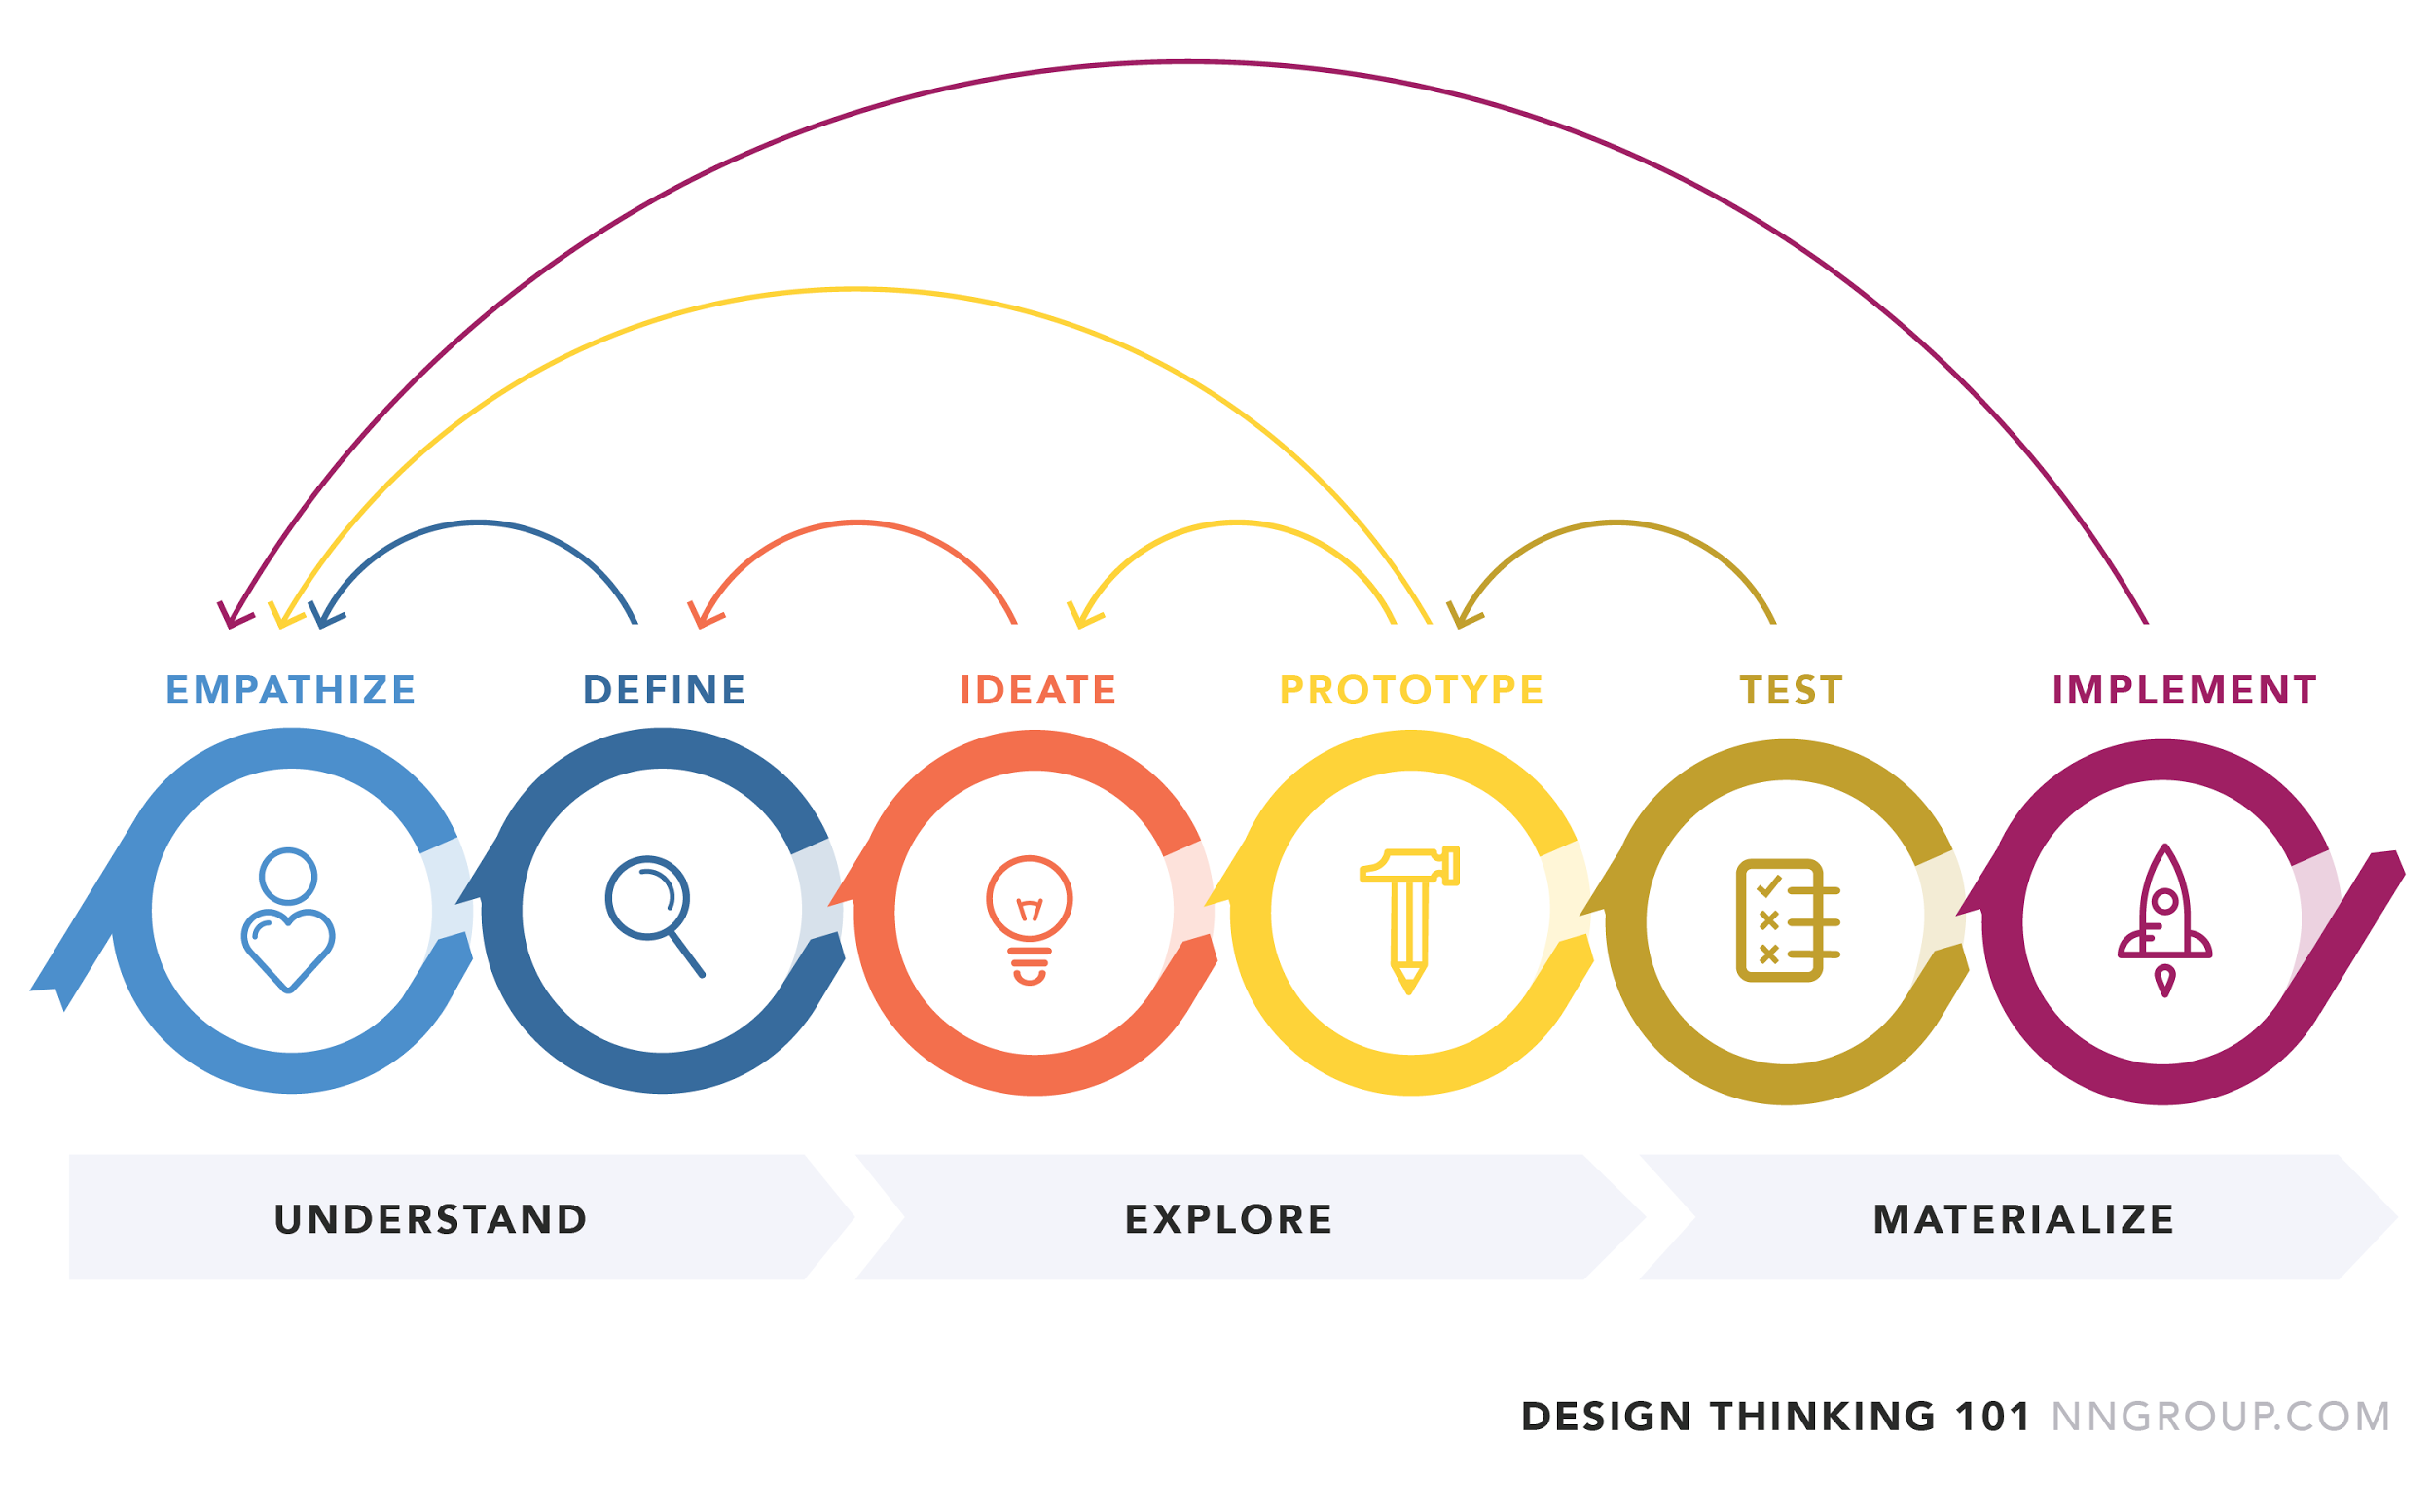 User-centered design process, design thinking